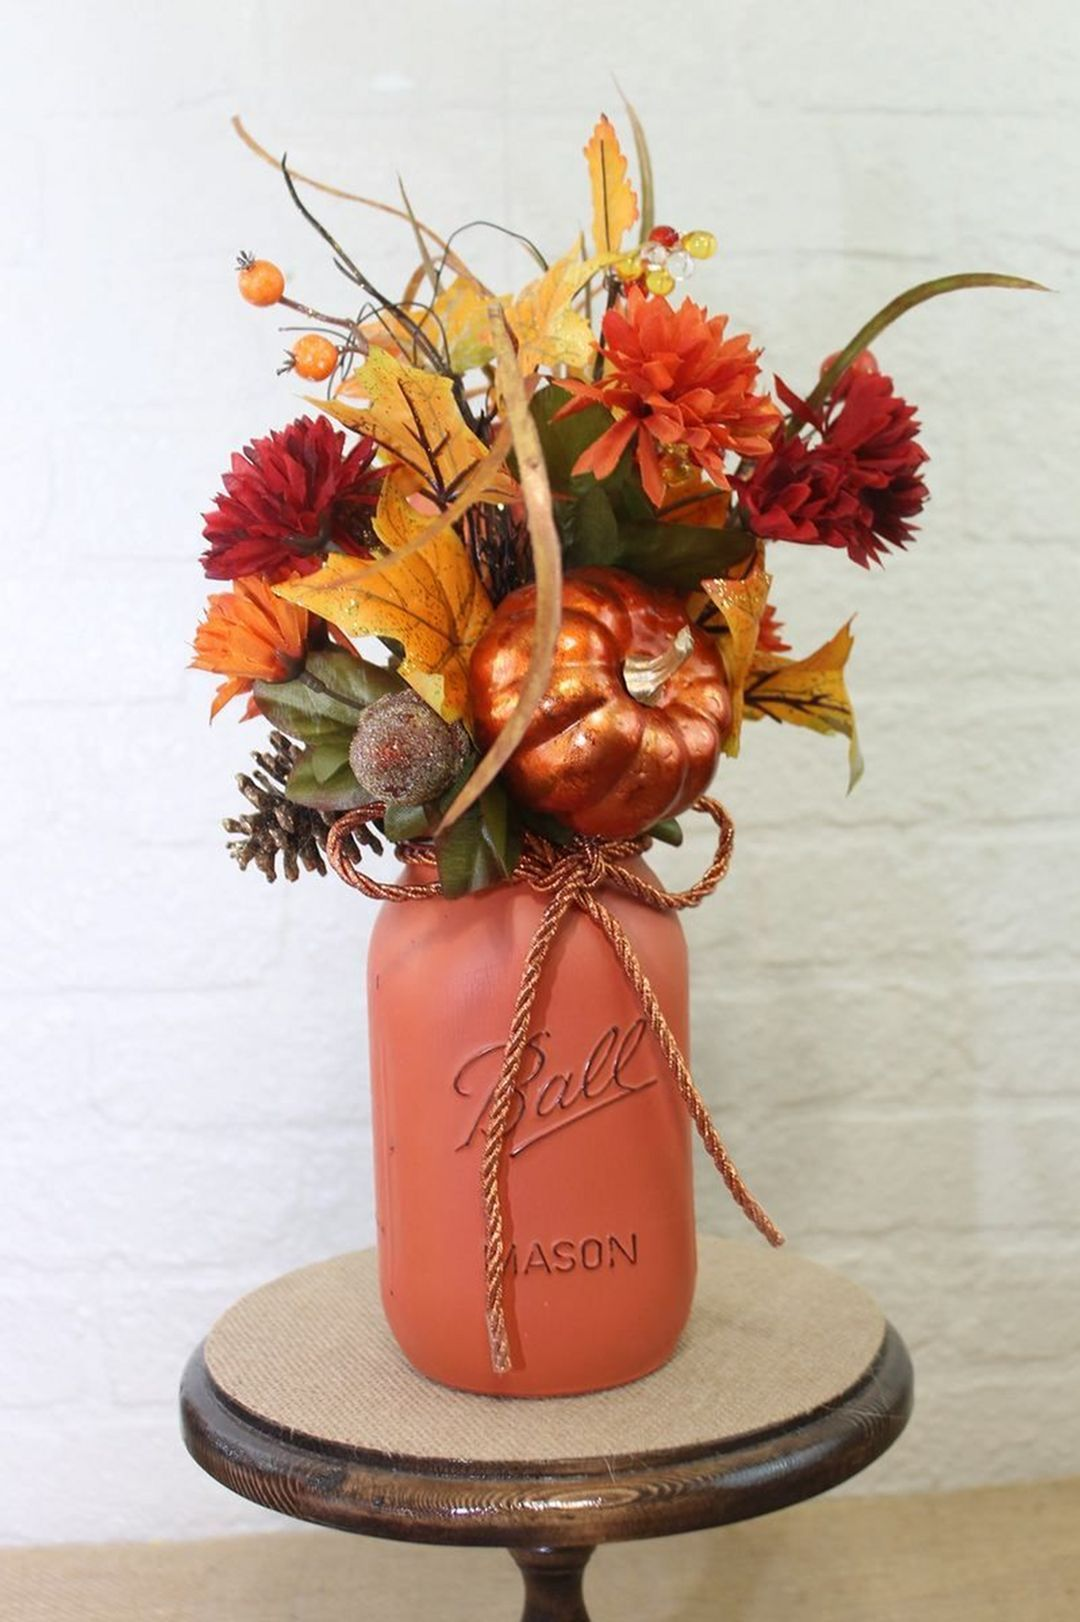 Top 15+ Wonderful DIY Fall Centerpieces Ideas to Decor Your Room Table Easily images